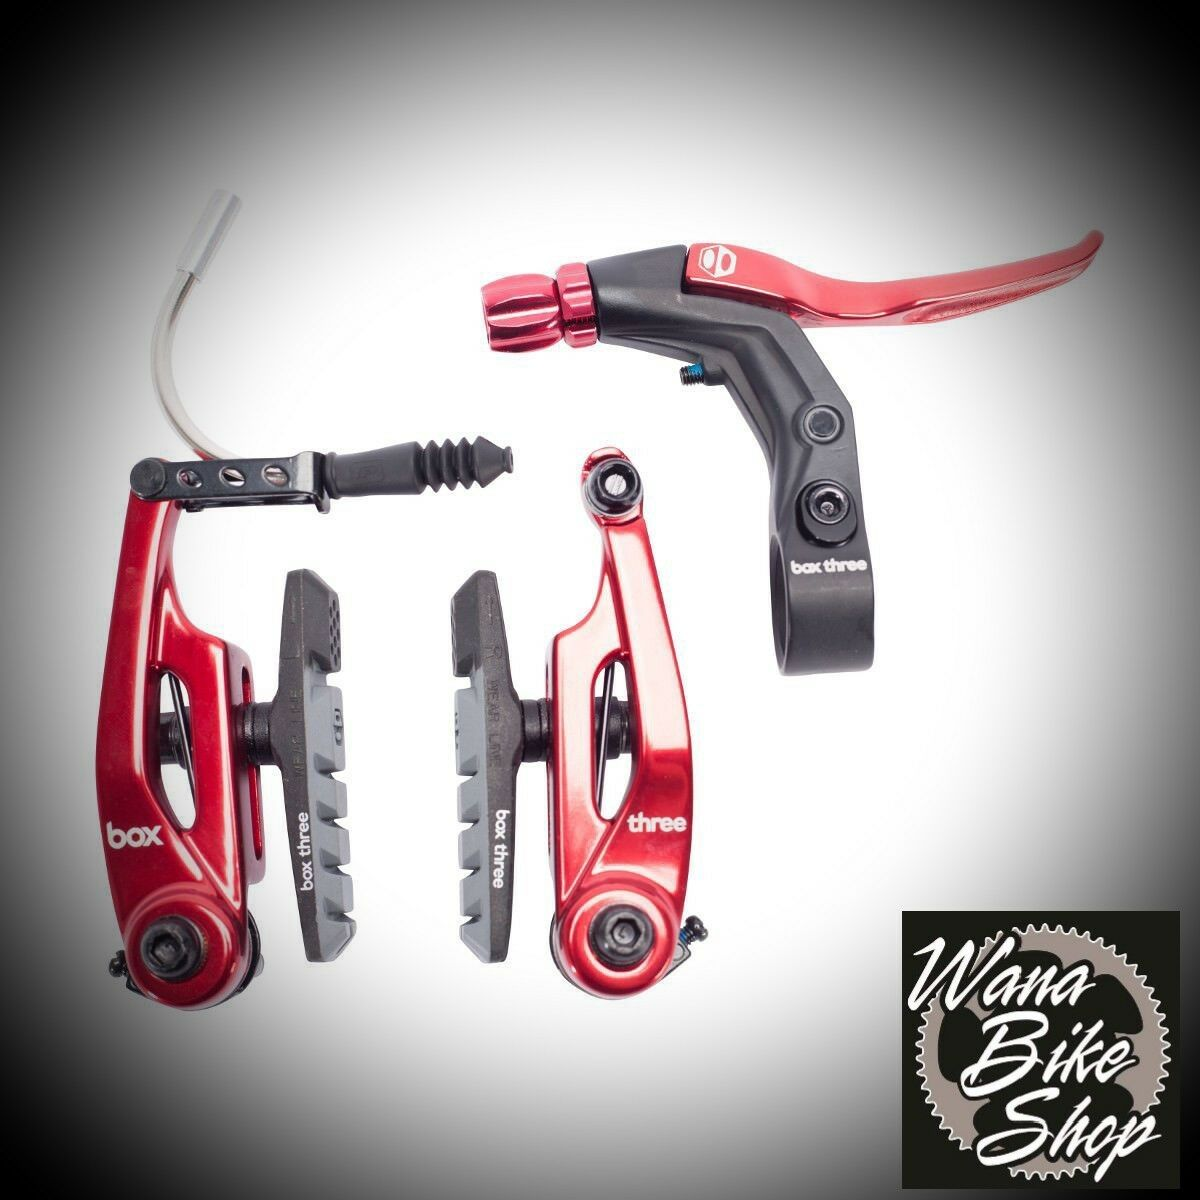 BRAKE KIT BOX THREE Mini Jr Expert  V Brake 85mm w LEVER RED AND CABLE  the most fashionable